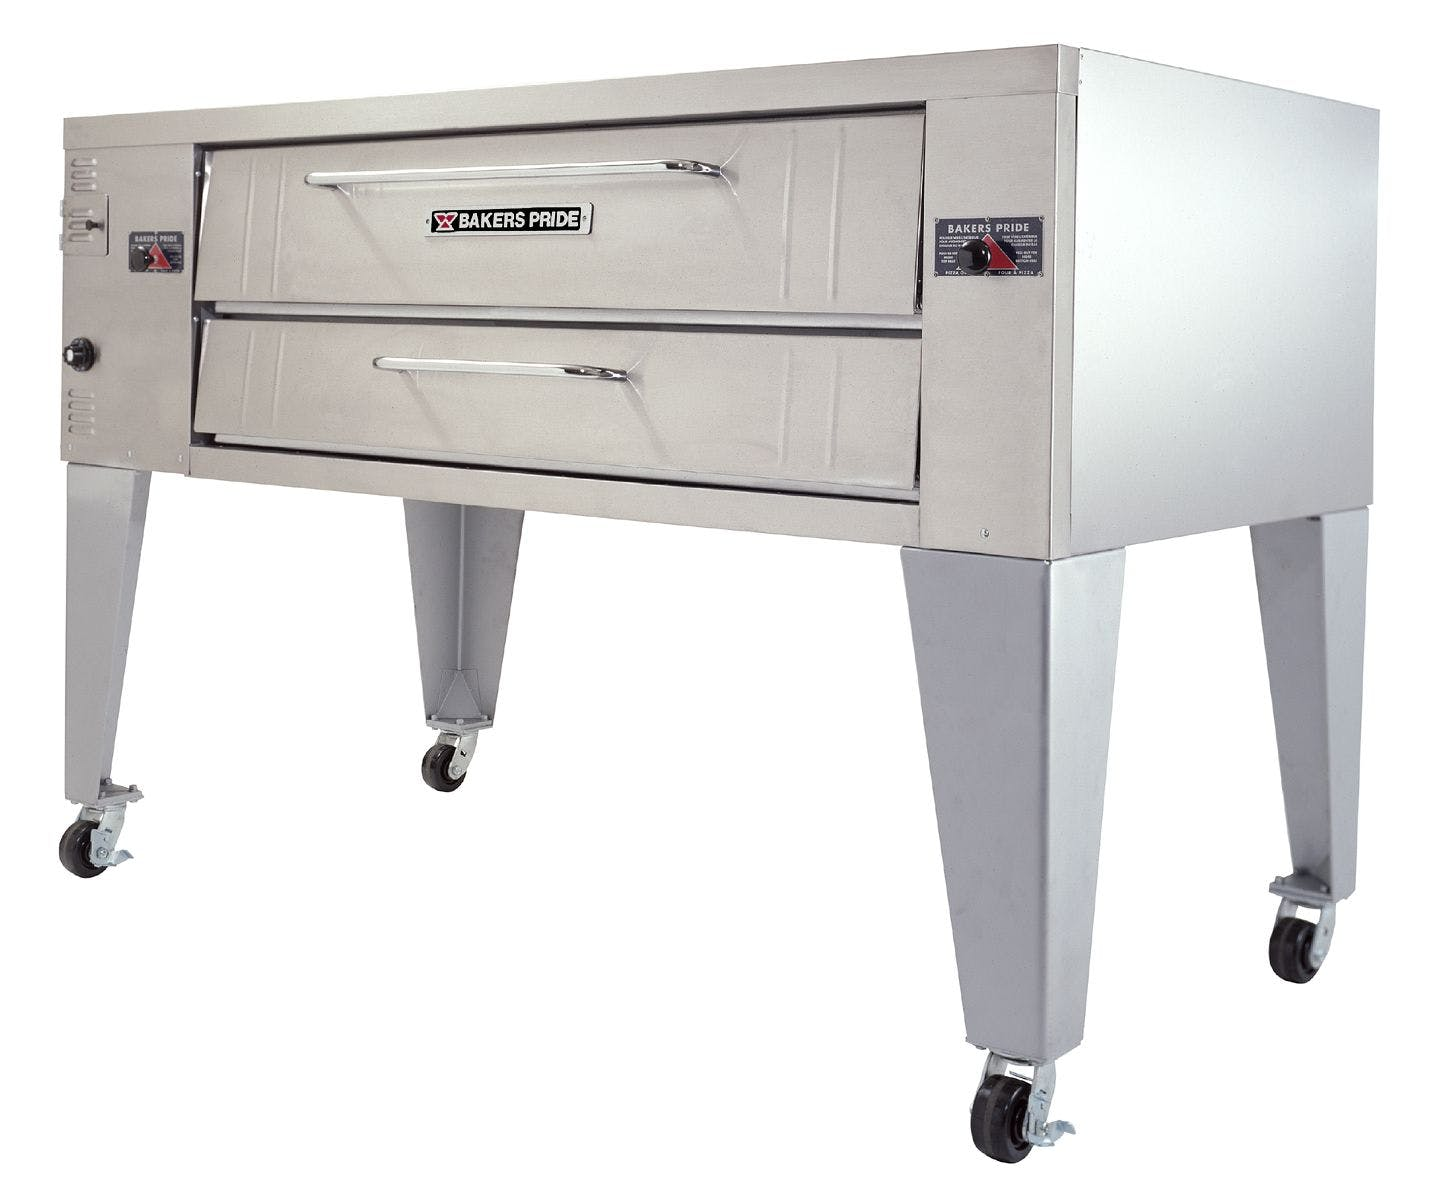 Bakers Pride Y Series Gas Deck Oven Pizza oven sold by pizzaovens.com